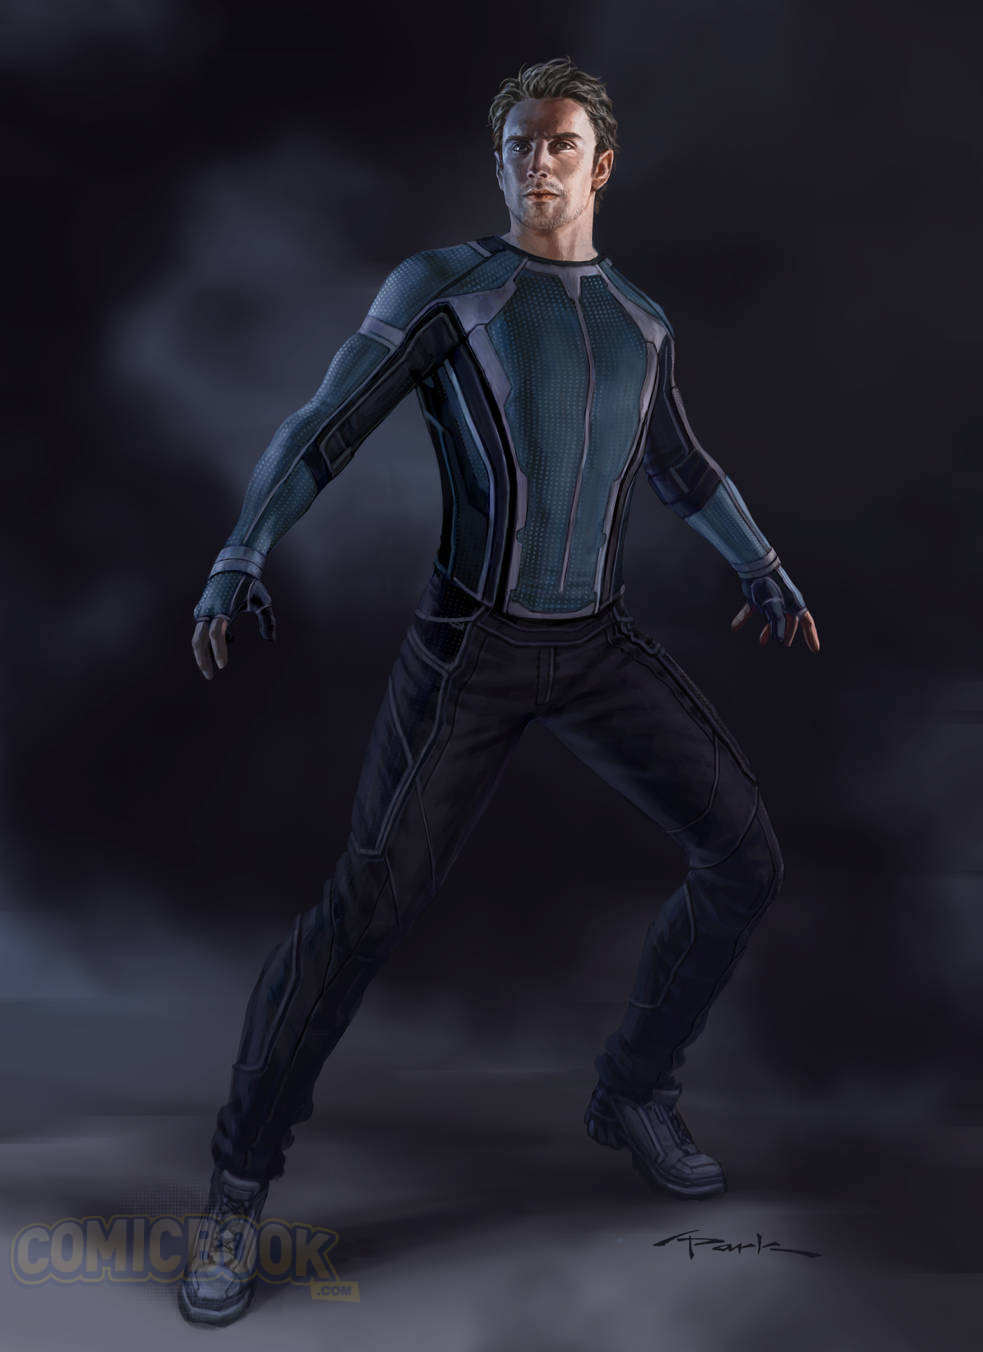 Avengers Quicksilver 2 costume recommendations to wear for everyday in 2019